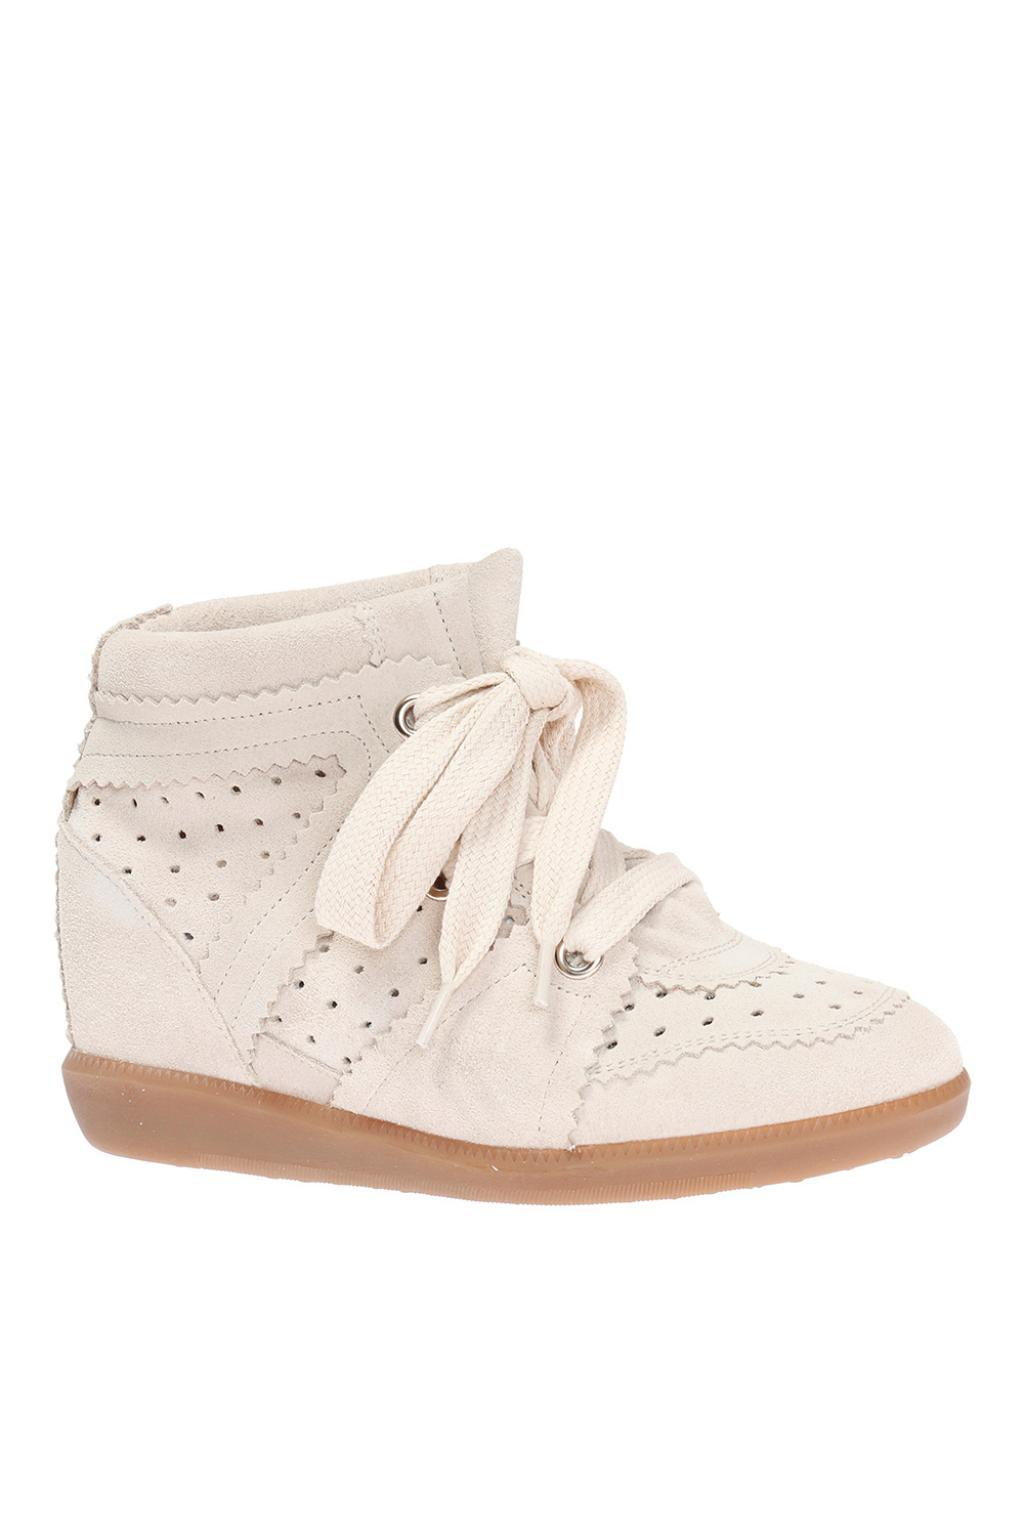 Isabel Marant Suede 'bobby' Wedge Sneakers in Black White (White)